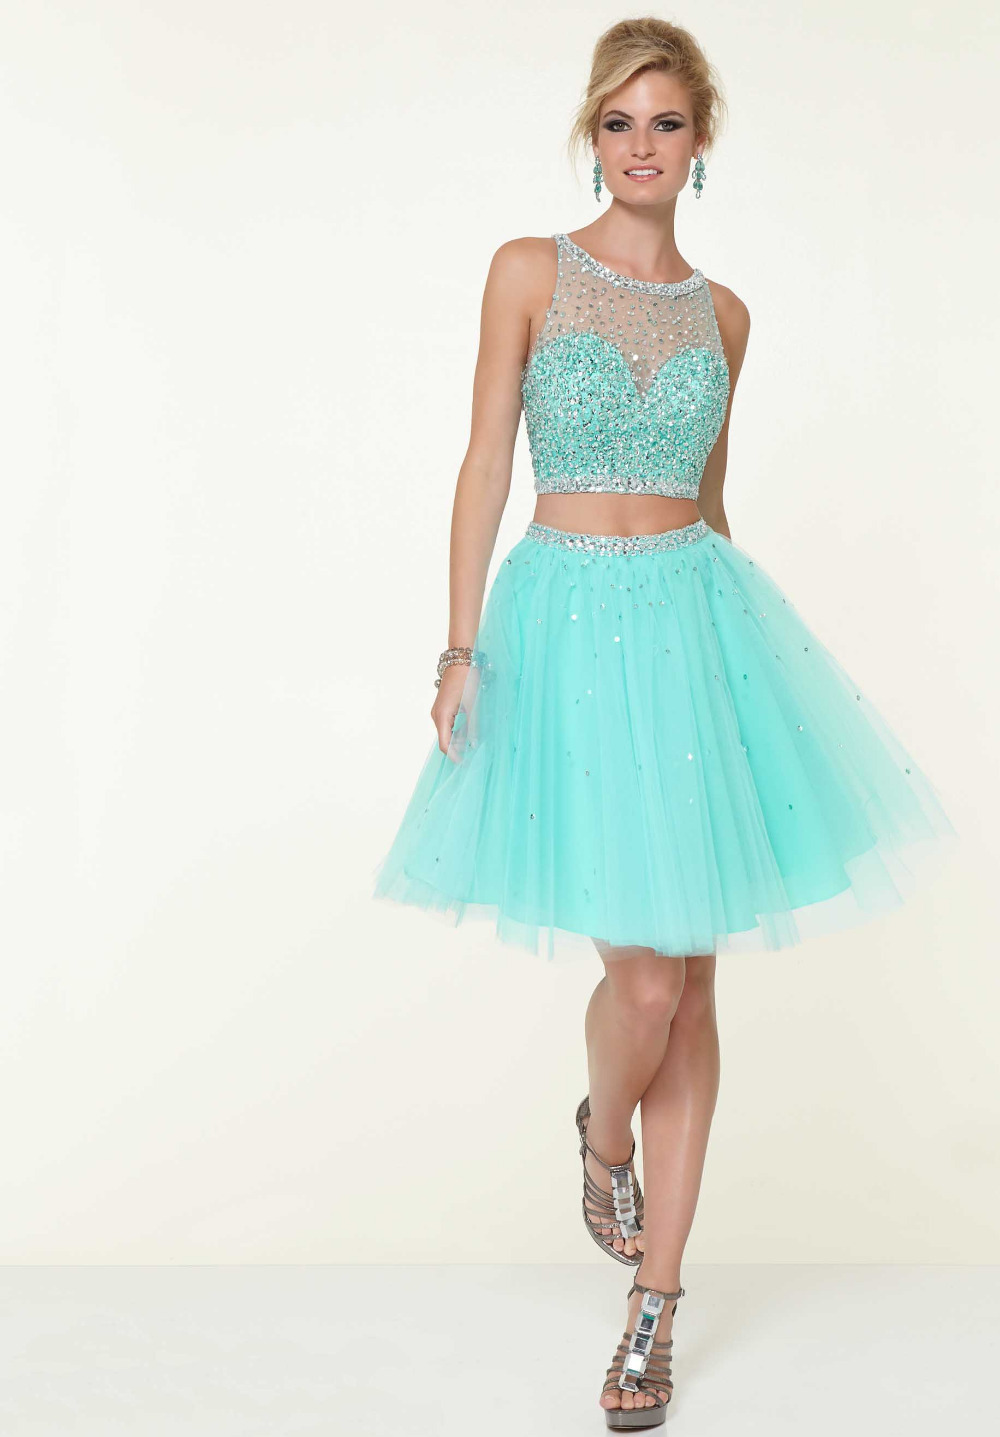 Green 8th Grade Prom Dresses | Dress images